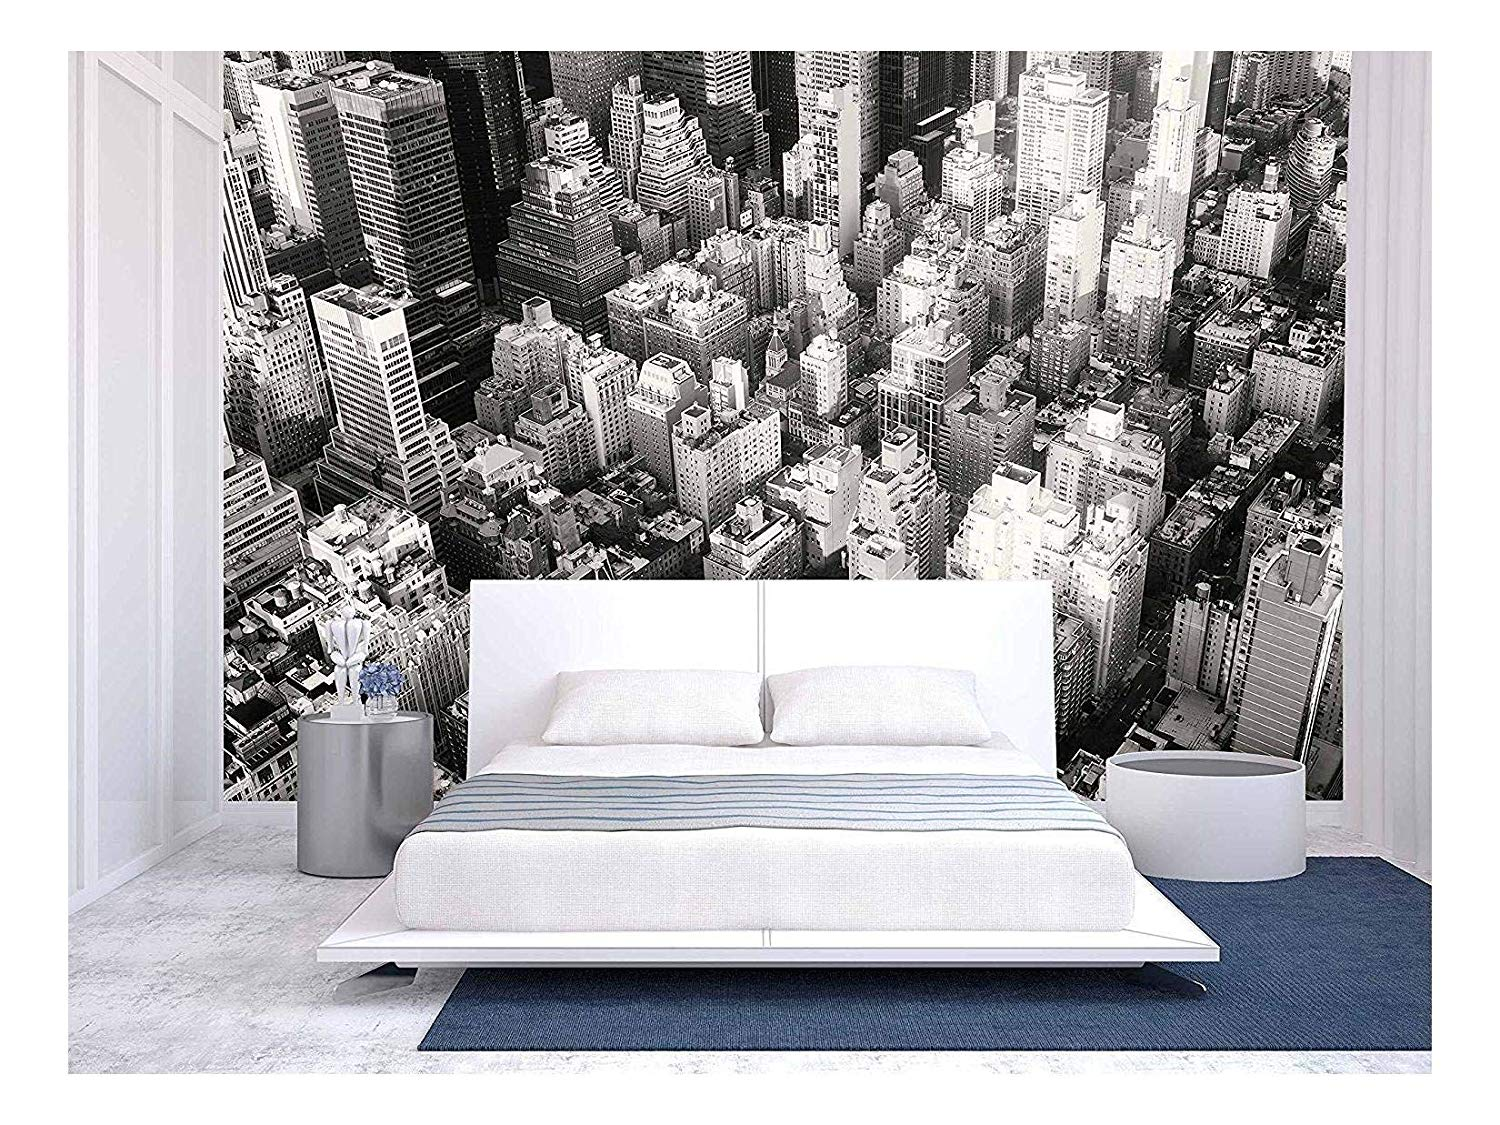 Amazoncom wall26   Black and White Urban Landscape of New York 1500x1125